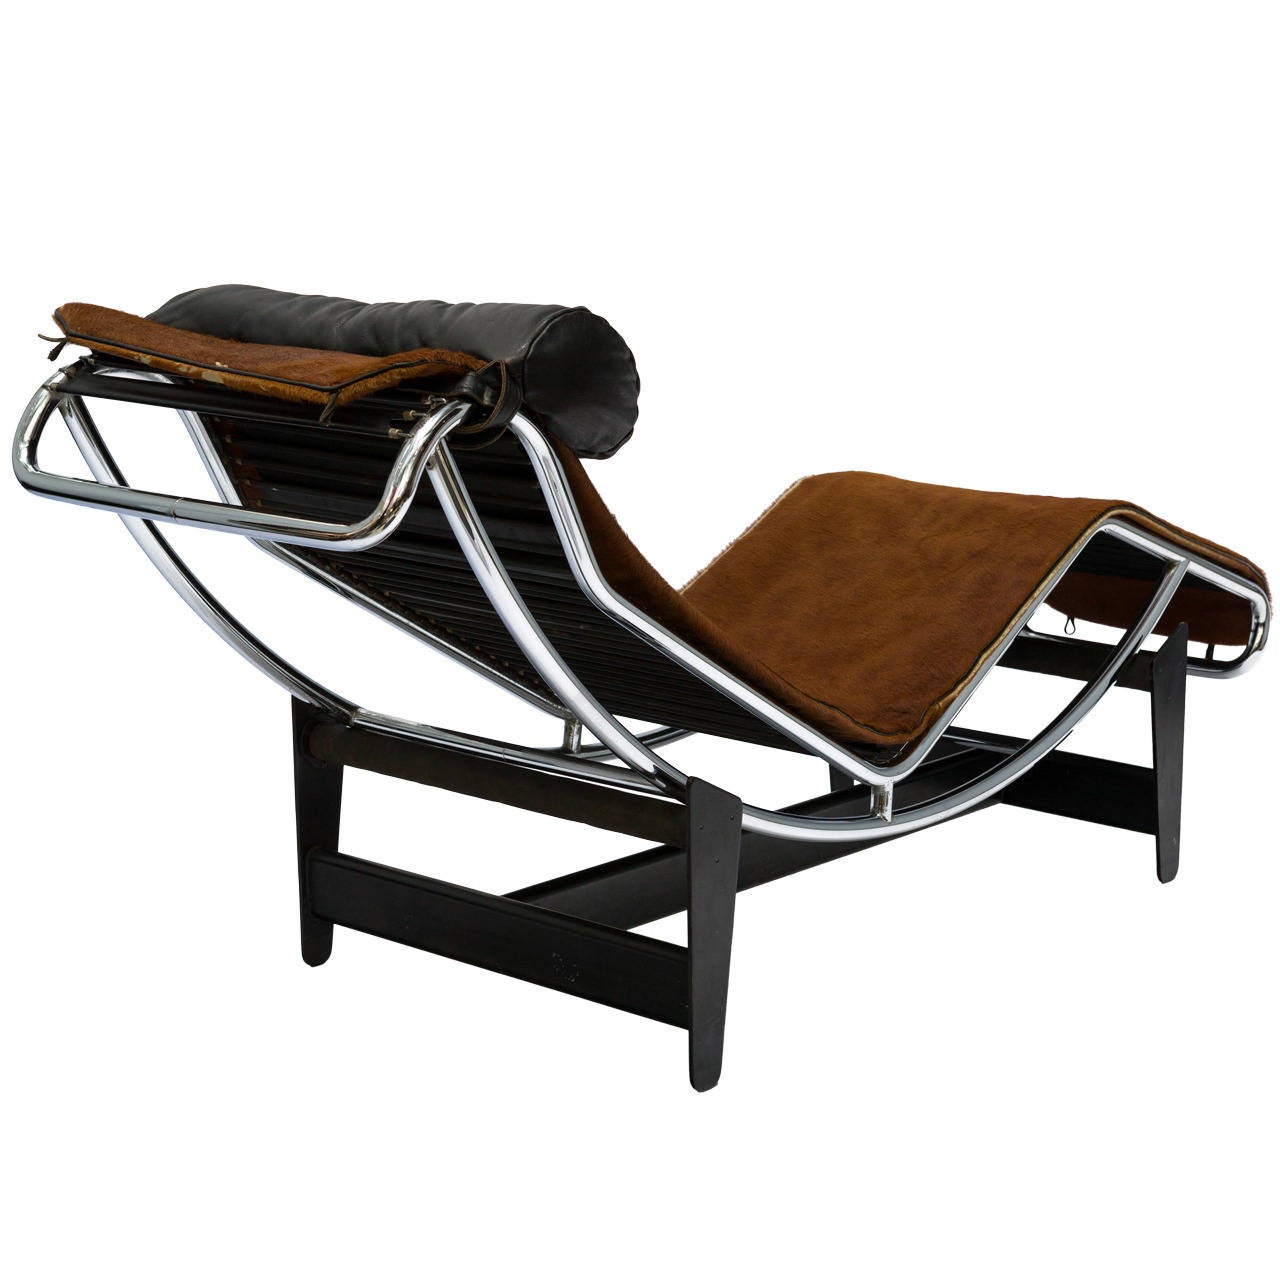 Le corbusier lc4 chaise lounge chair in cowhide for sale for Chaise lounge corbusier